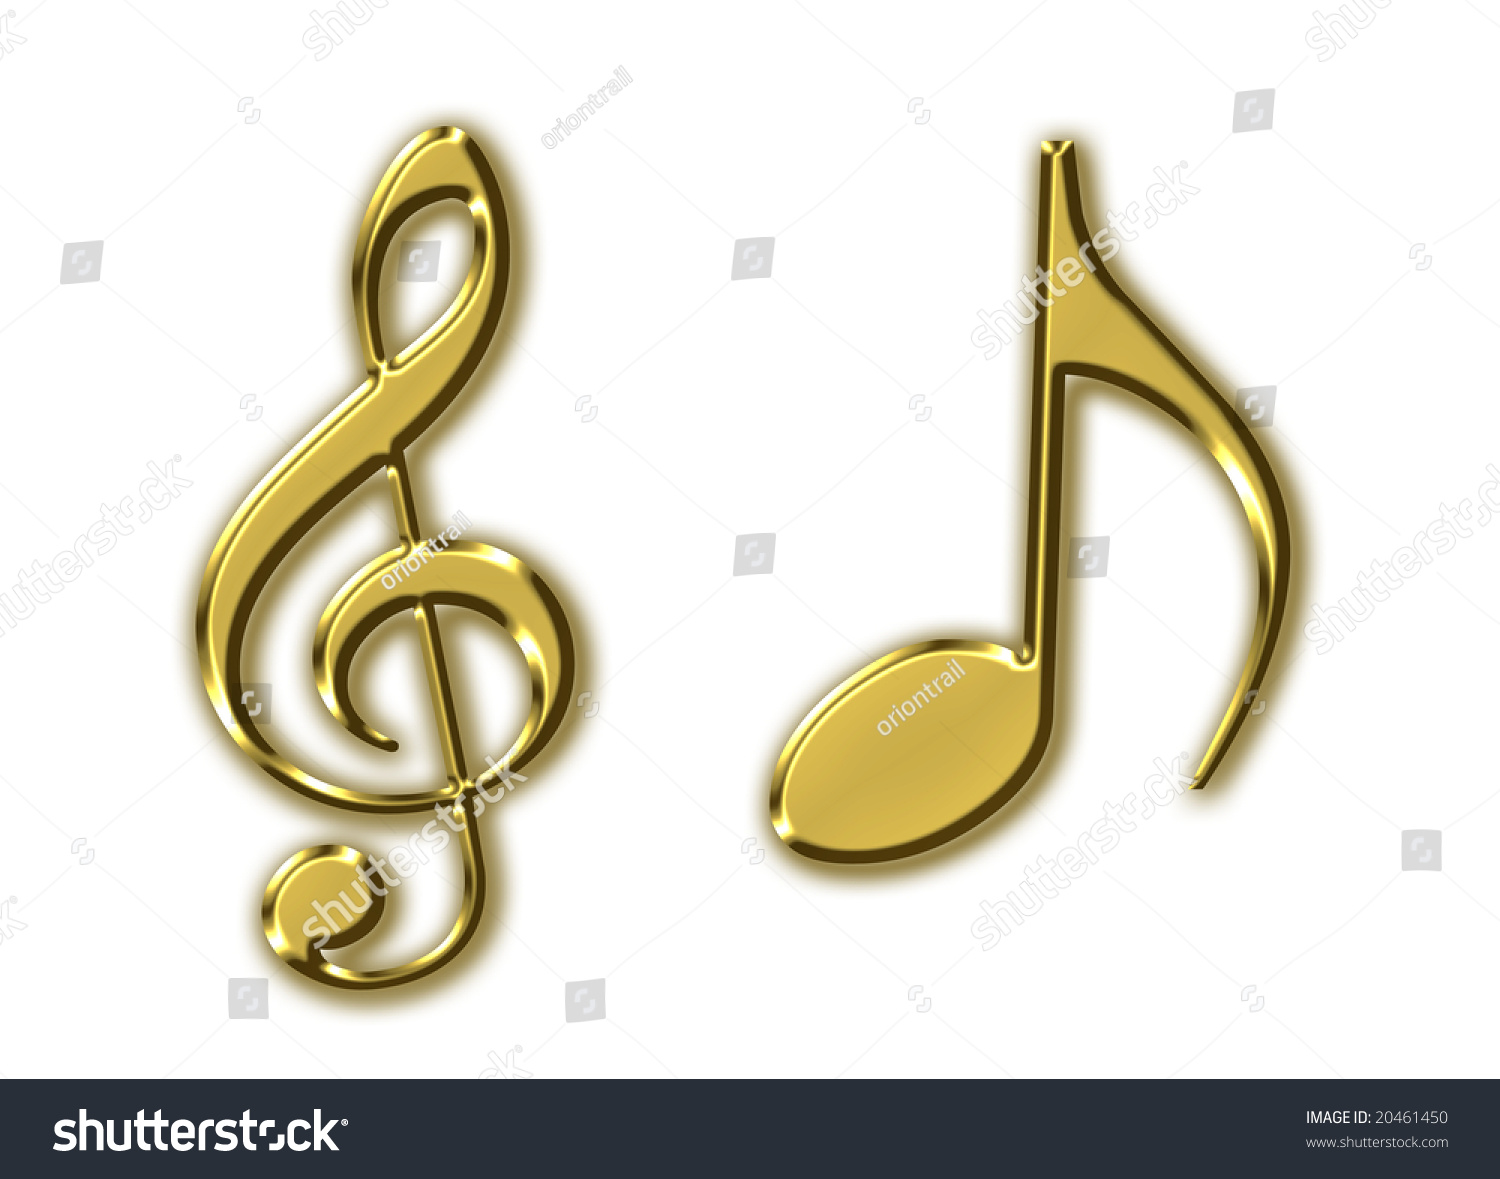 Golden Music Signs Stock Illustration 20461450 - Shutterstock